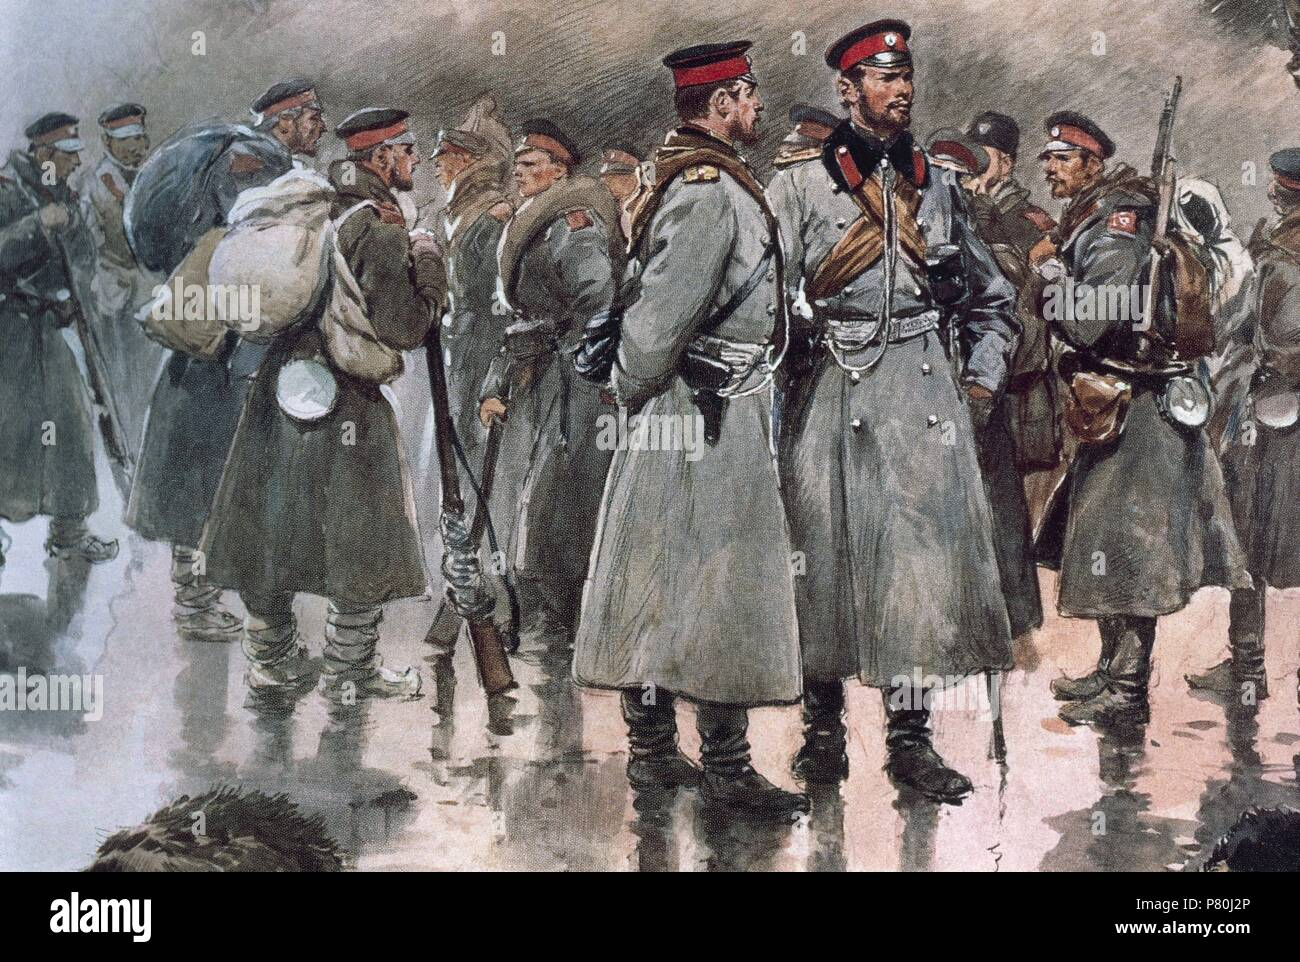 First Balkan War (1912-1913). The Bulgarian Army in Thrace. Field infantry, officers and soldiers. Drawing by George Scott, 1912. - Stock Image